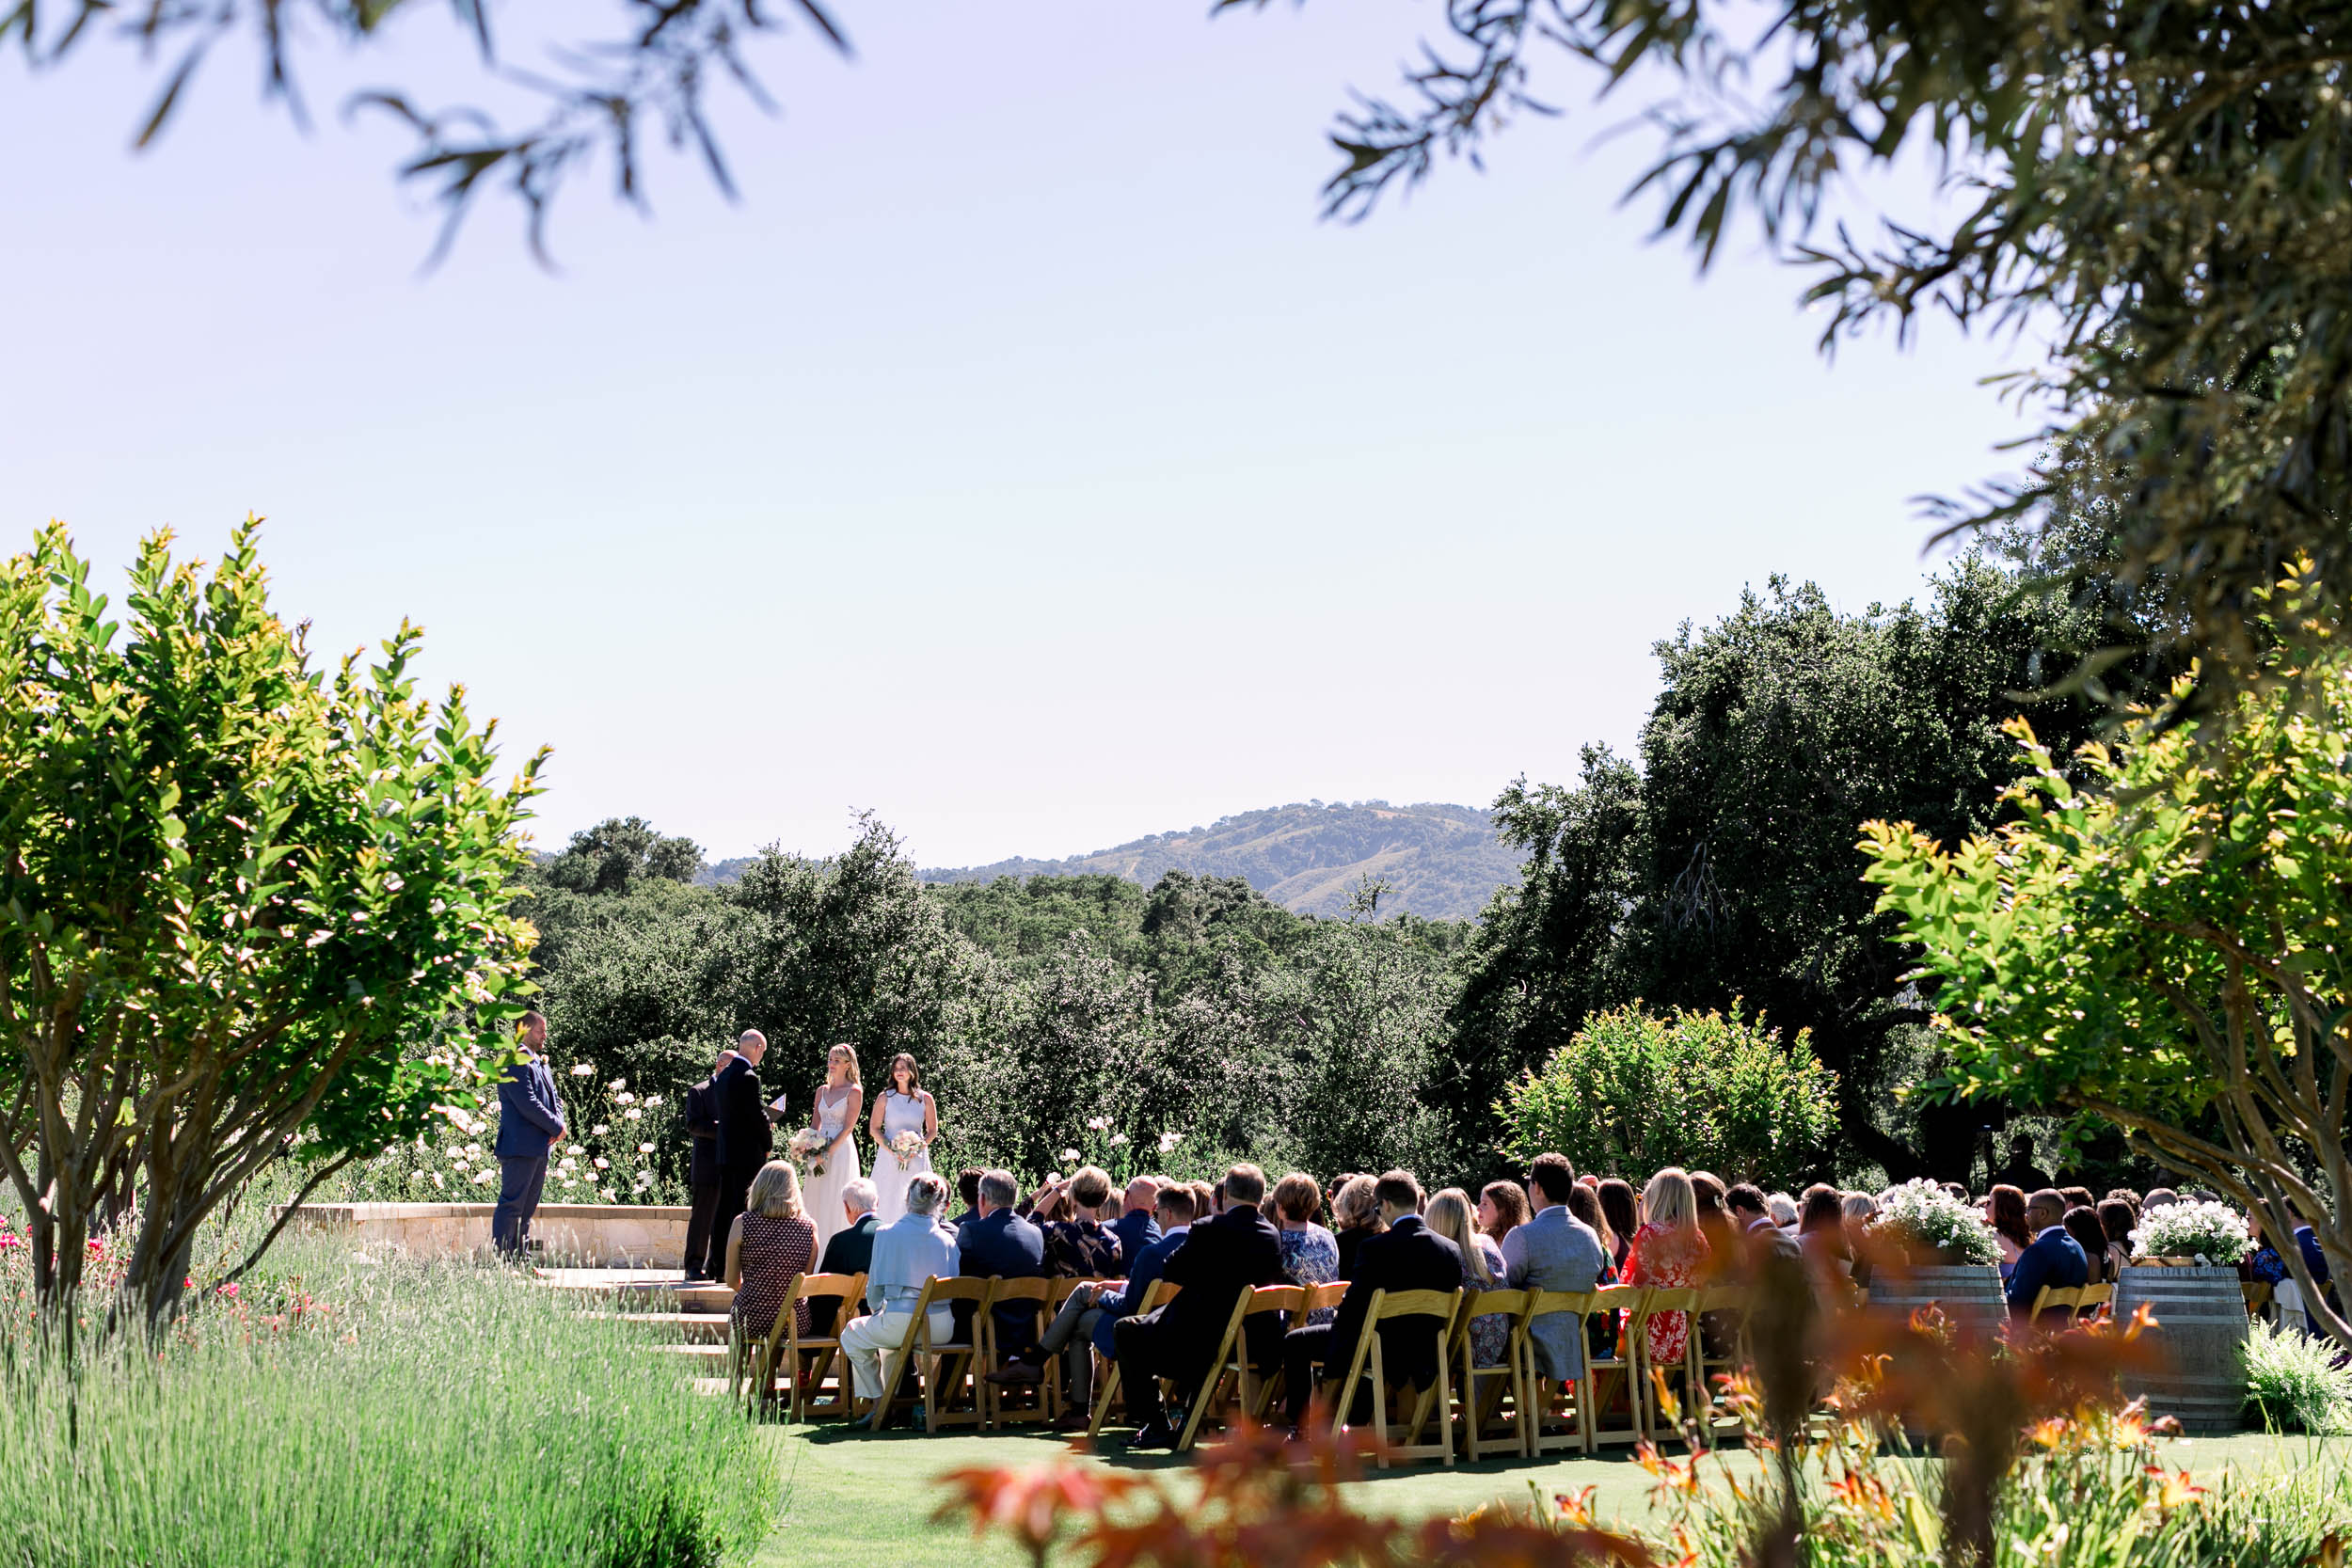 C+D_Holman Ranch Wedding_Carmel Valley_Buena Lane Photography_060619_ER256.jpg